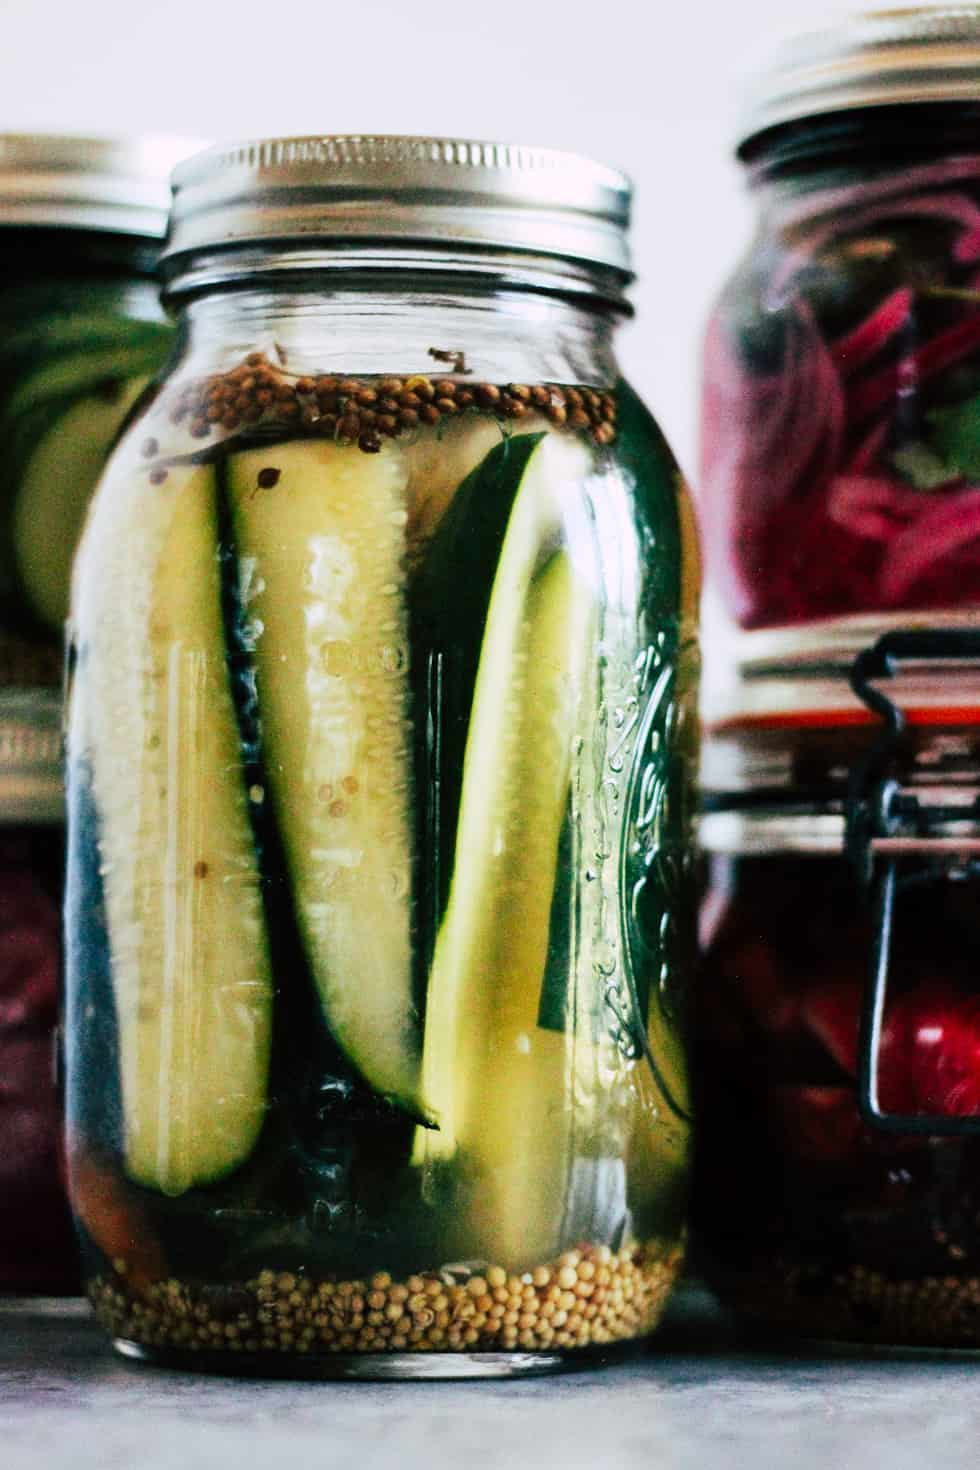 Mason jar filled with pickle spears.